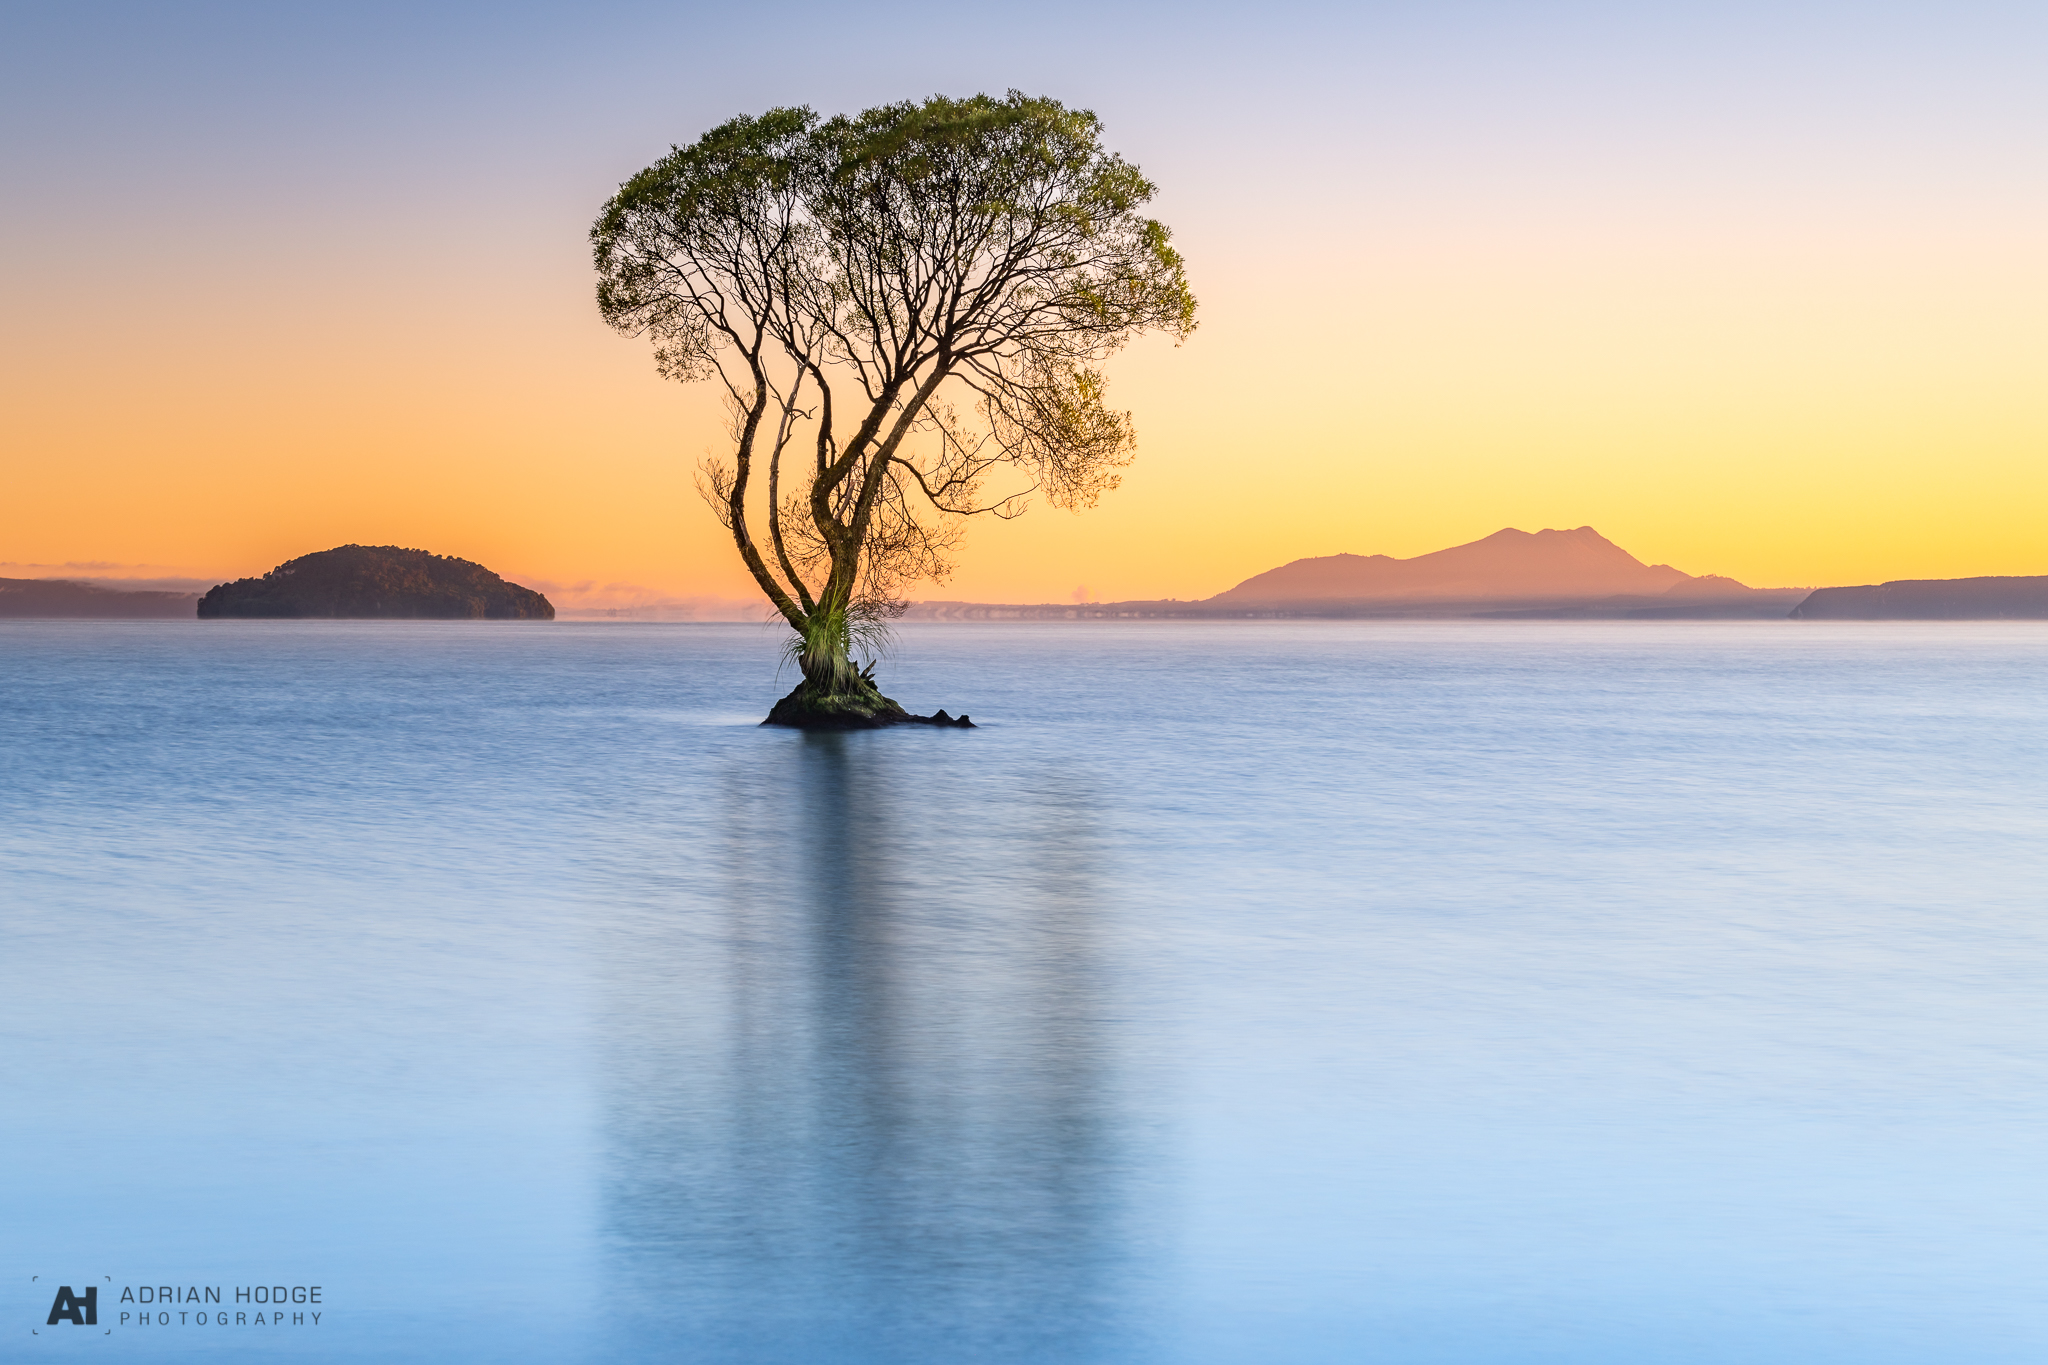 The morning glow of sunlight captures the edge of a lone tree growing from Lake Taupo